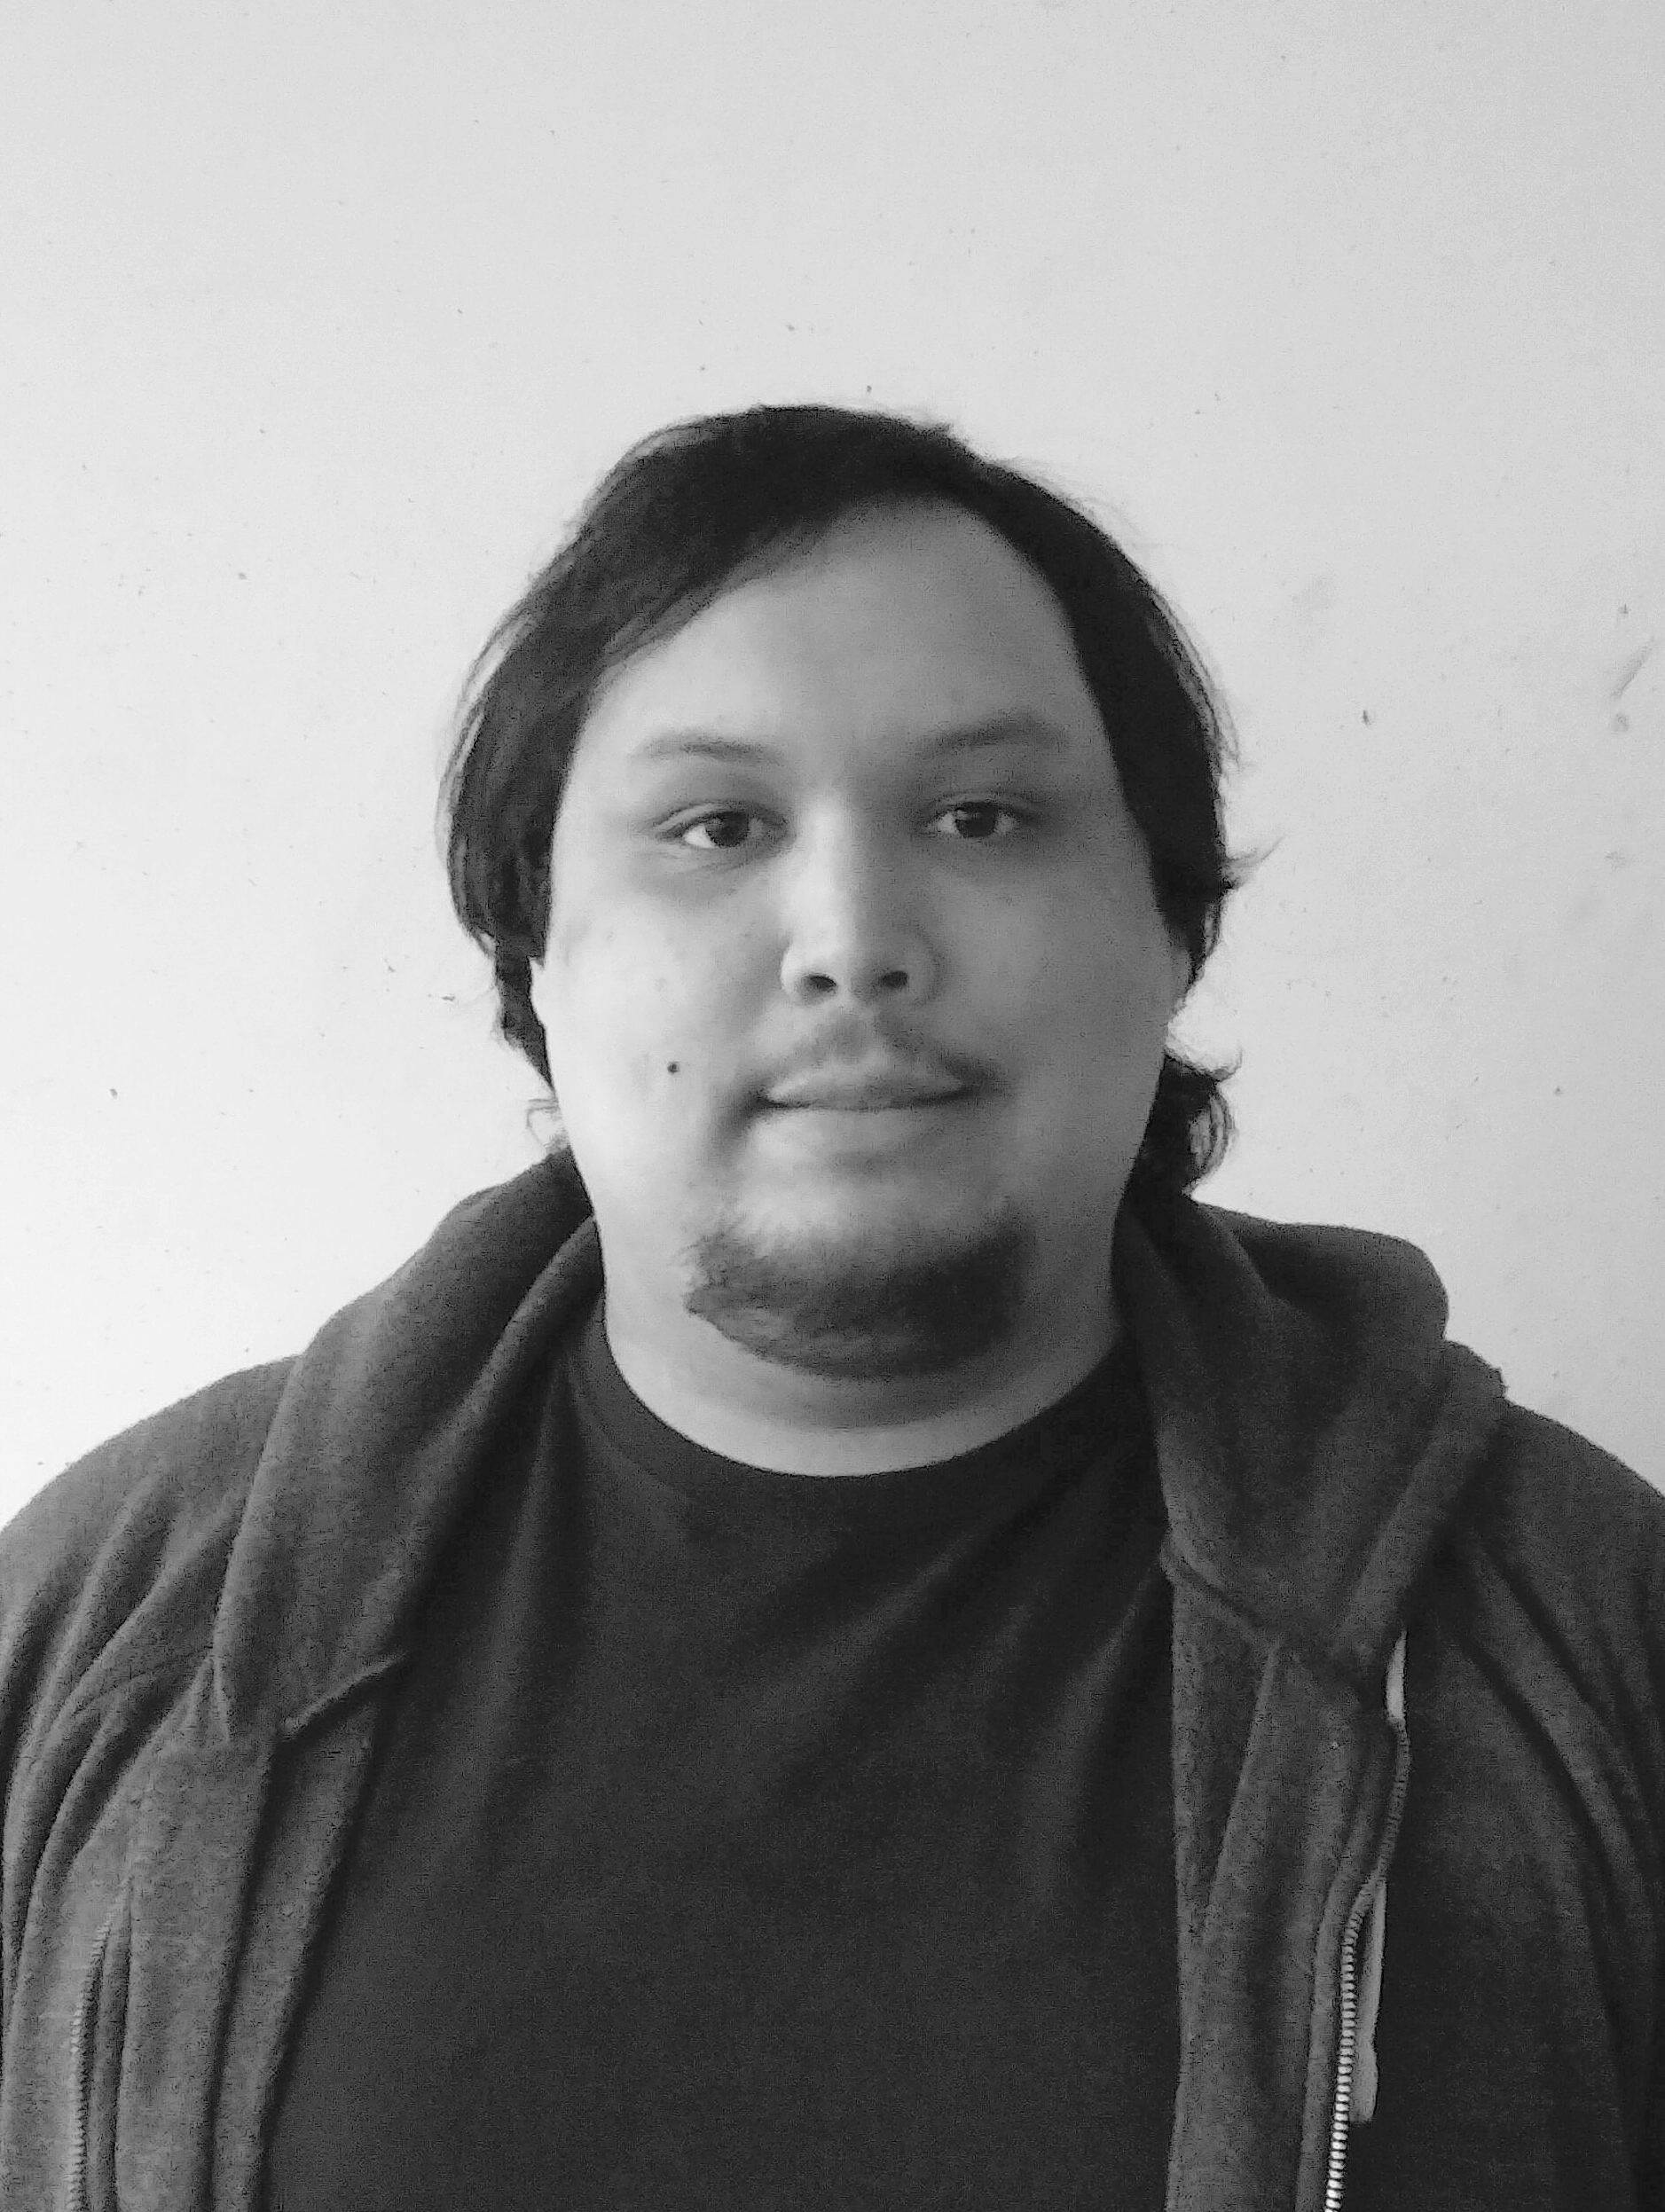 Isaac Sweet - Isaac is a software developer, dog petter, and a man of deep thought regarding video games. After a year of happy work with non-game software, he's happier to take his love of video games into the profession sphere and work on a project that can inspire and bring joy.